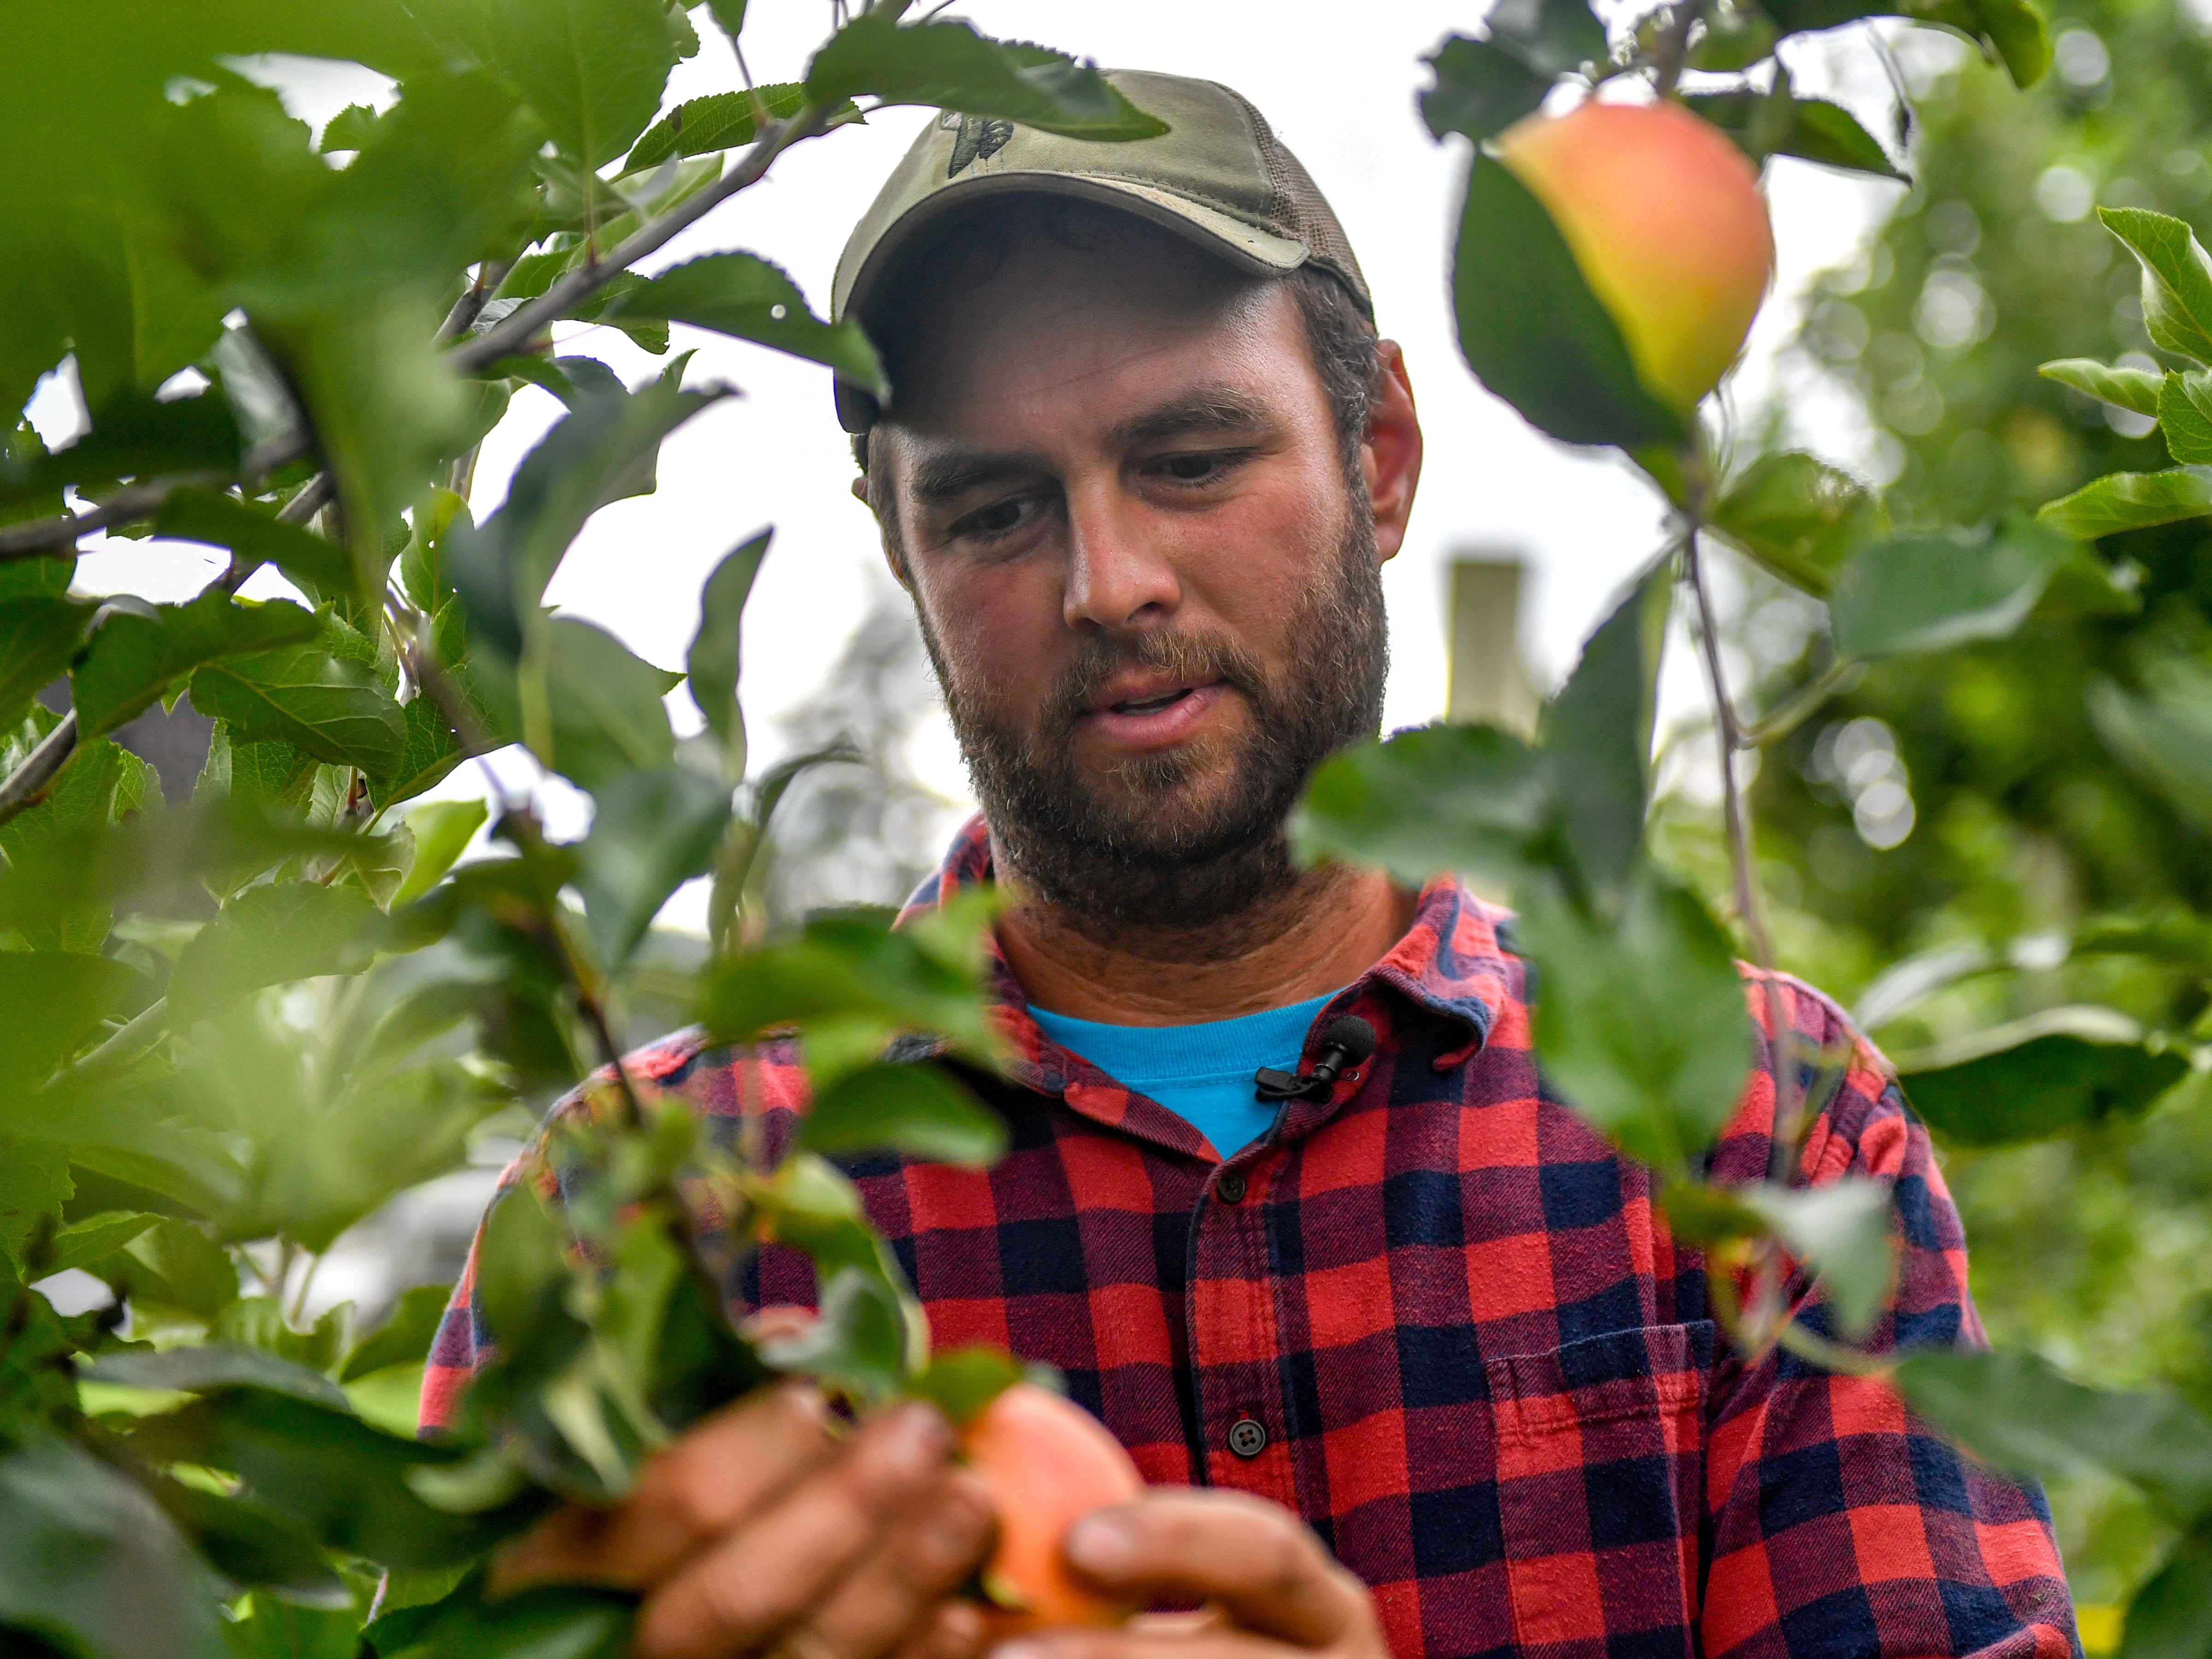 Michael Flinchbaugh, one of the owners of Flinchbaugh's Orchard and Farm Market, examines if an apple is ready to be picked.